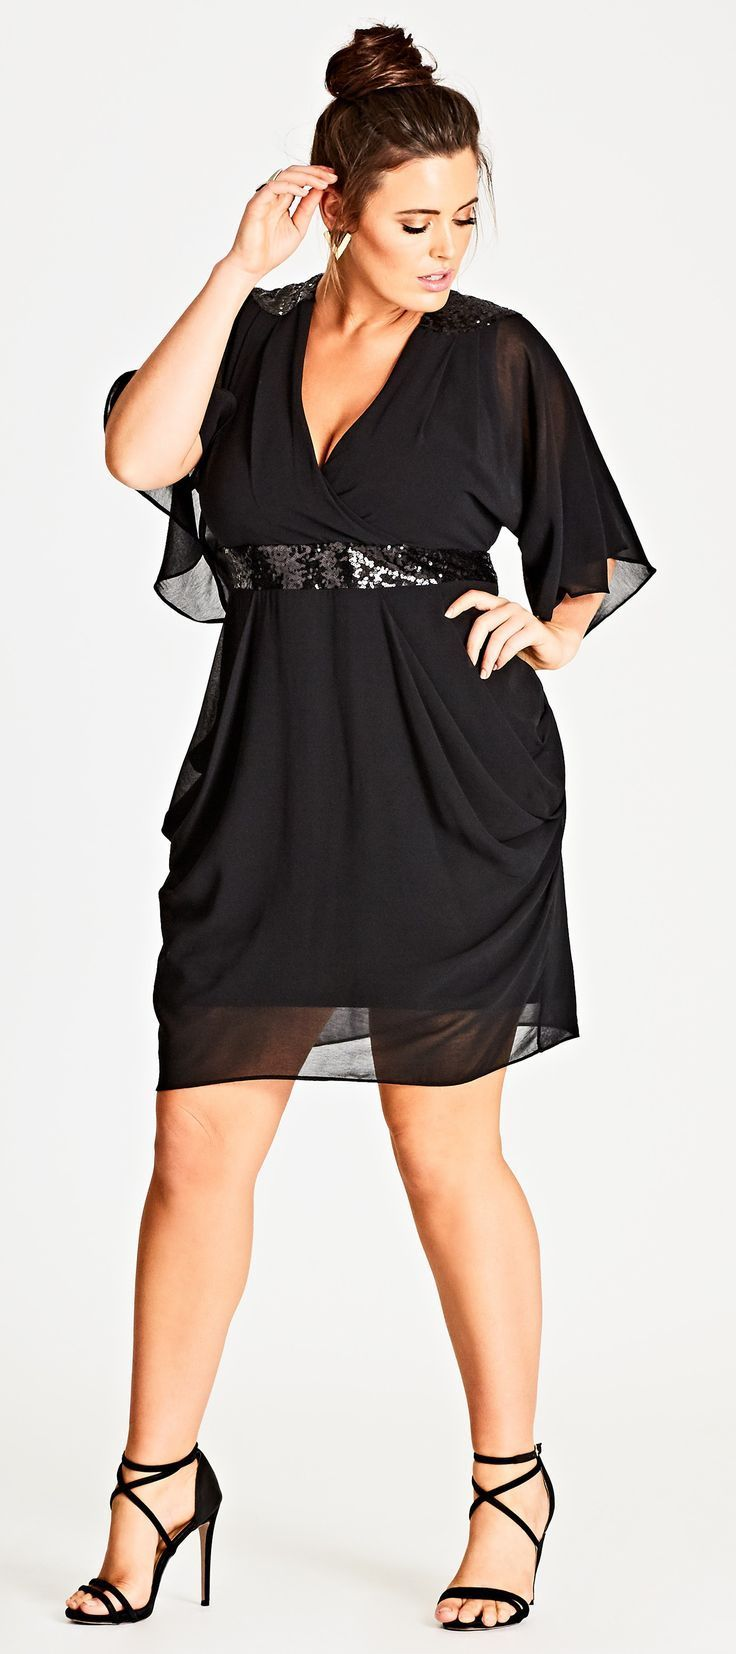 45 Plus Size Wedding Guest Dresses With Sleeves Alexa Webb Plus Size Black Dresses Plus Size Party Dresses Plus Size Cocktail Dresses [ 1654 x 736 Pixel ]